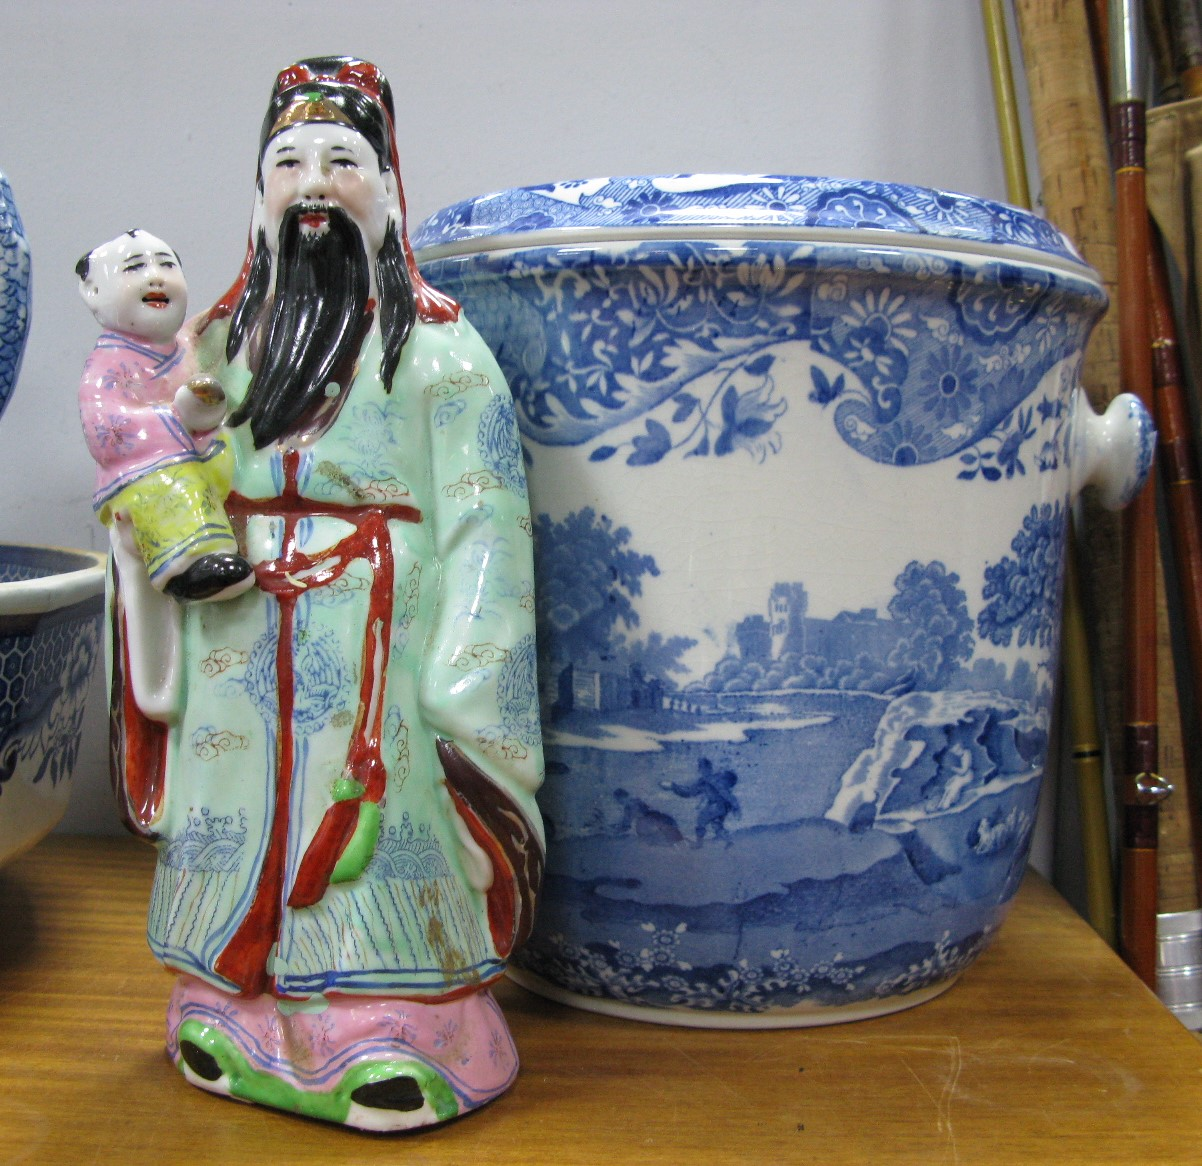 Lot 1001 - A Spode 'Italian' Pattern Slop Bucket and Cover, (lacking cane swing handle), and a Chinese model of